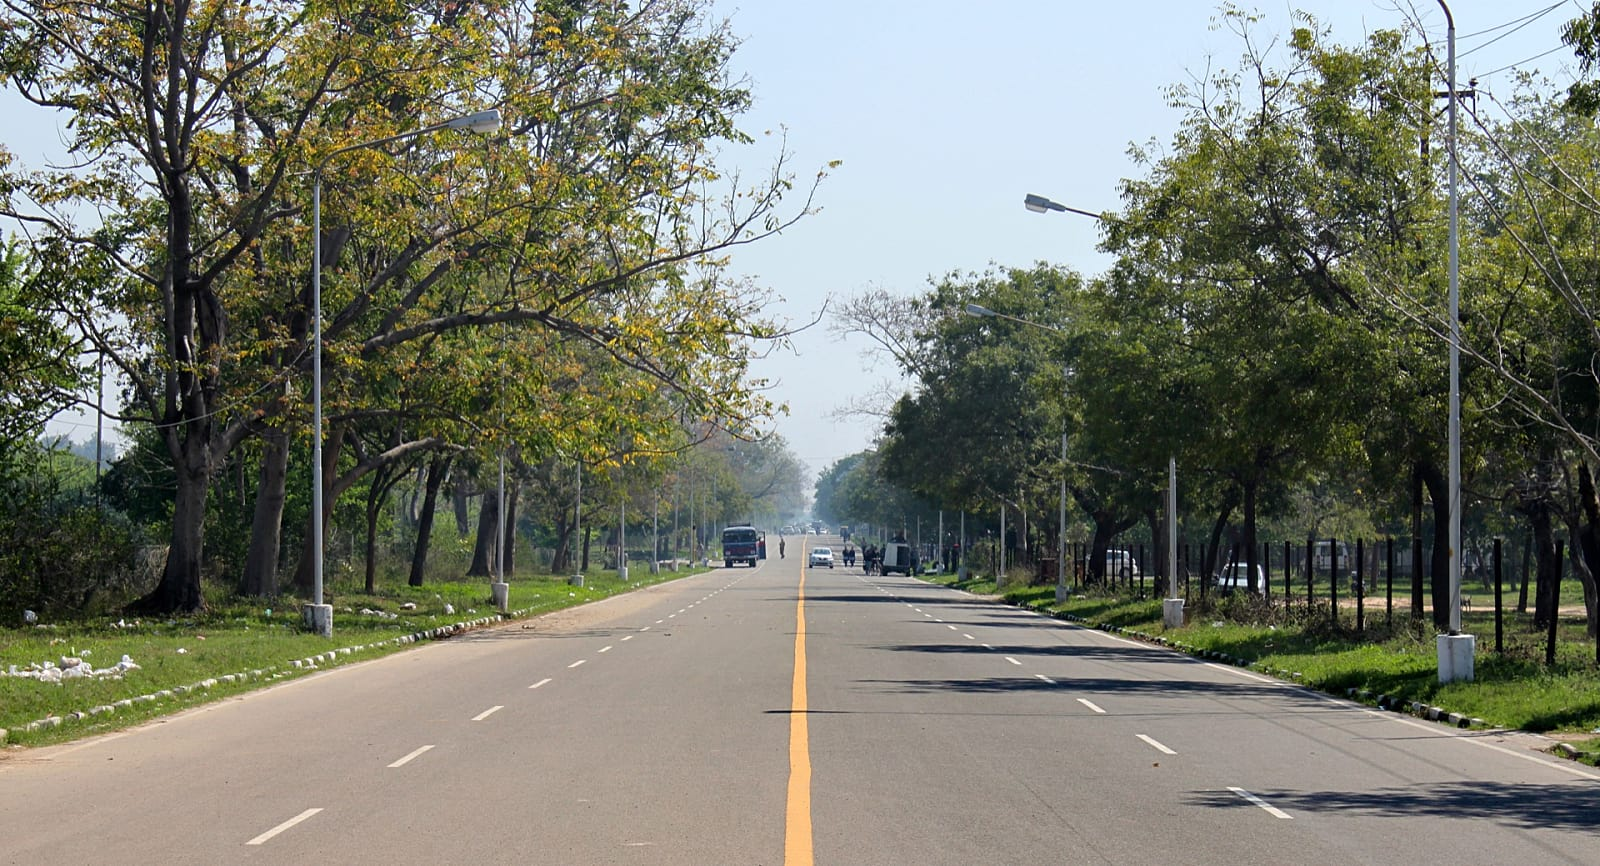 Banner of Chandigarh: Improving Road Safety Using Data Analysis